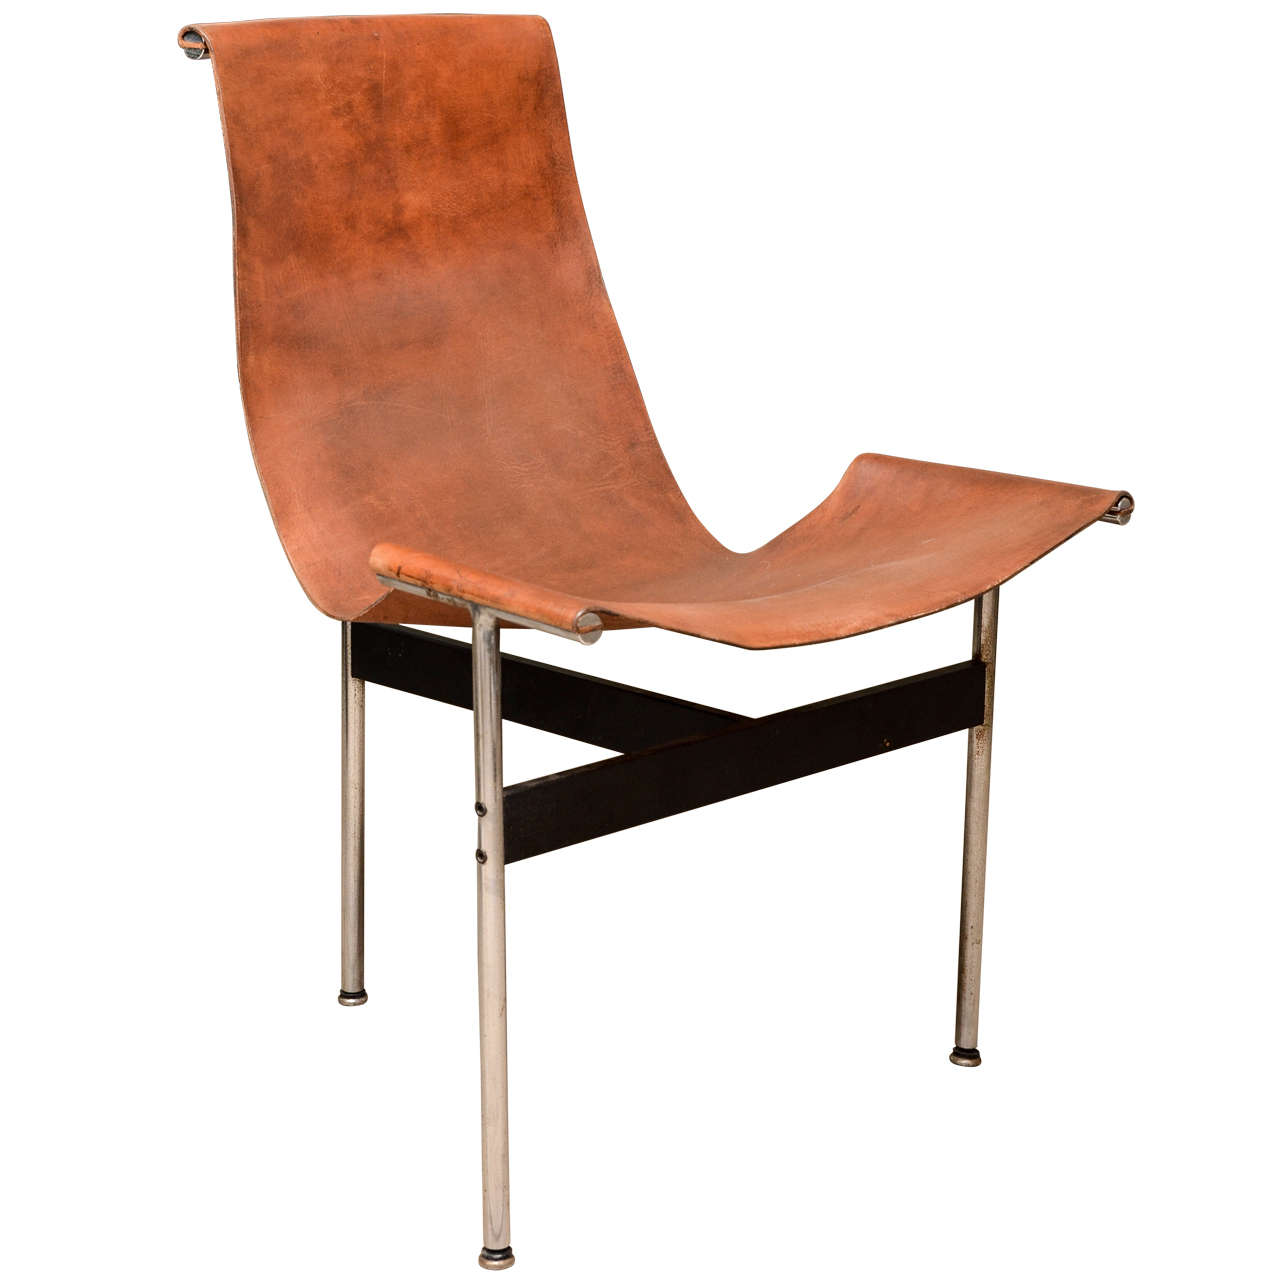 sling chairs for sale heated seat covers office chair katavolos leather quott quot at 1stdibs